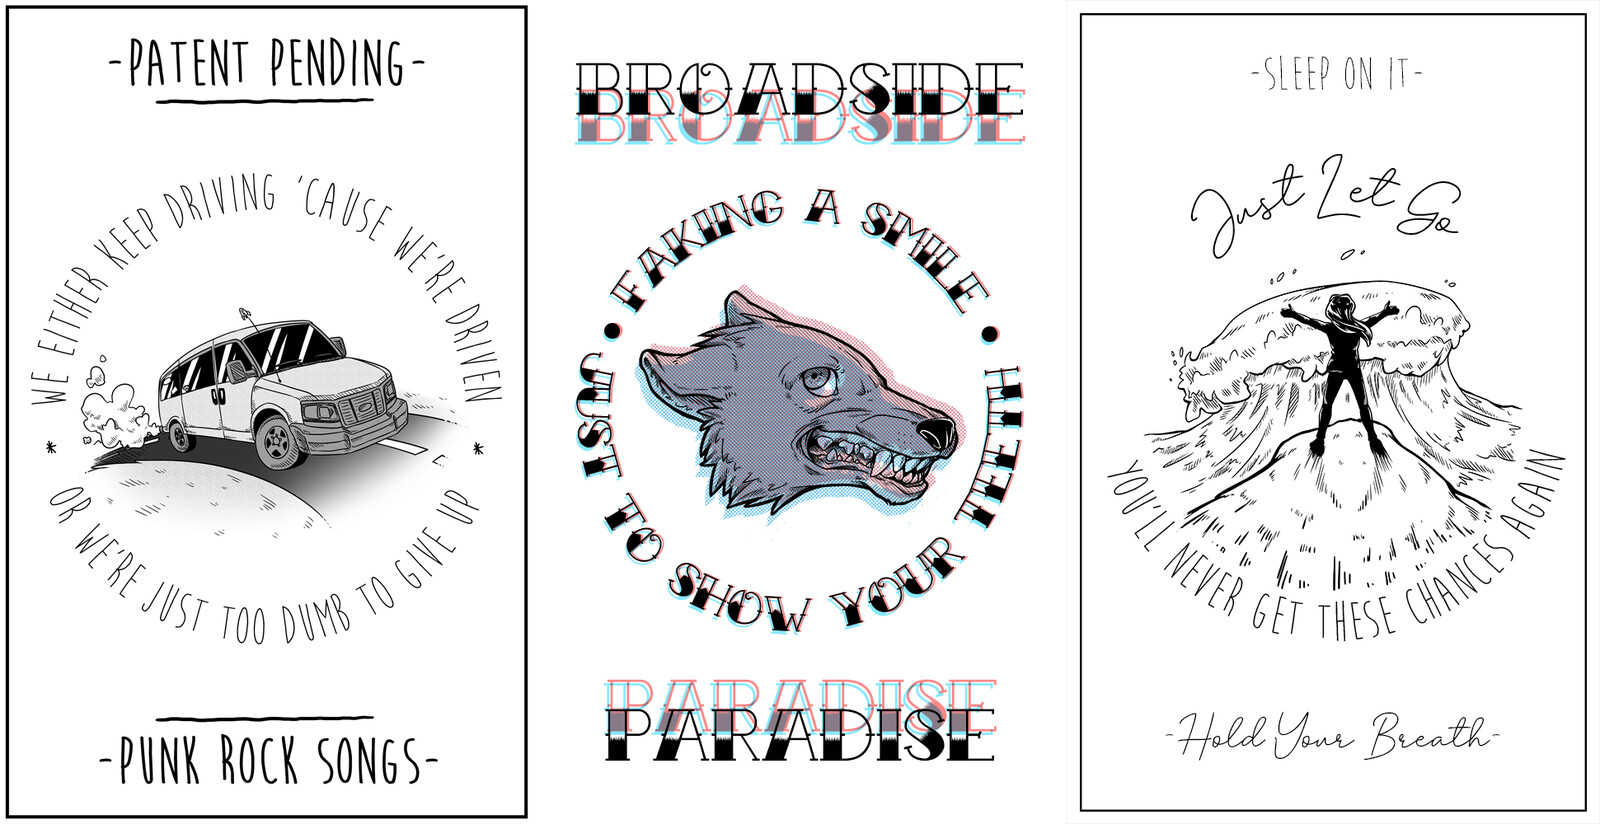 Poster Designs - Patent Pending, Broadside, Sleep On It